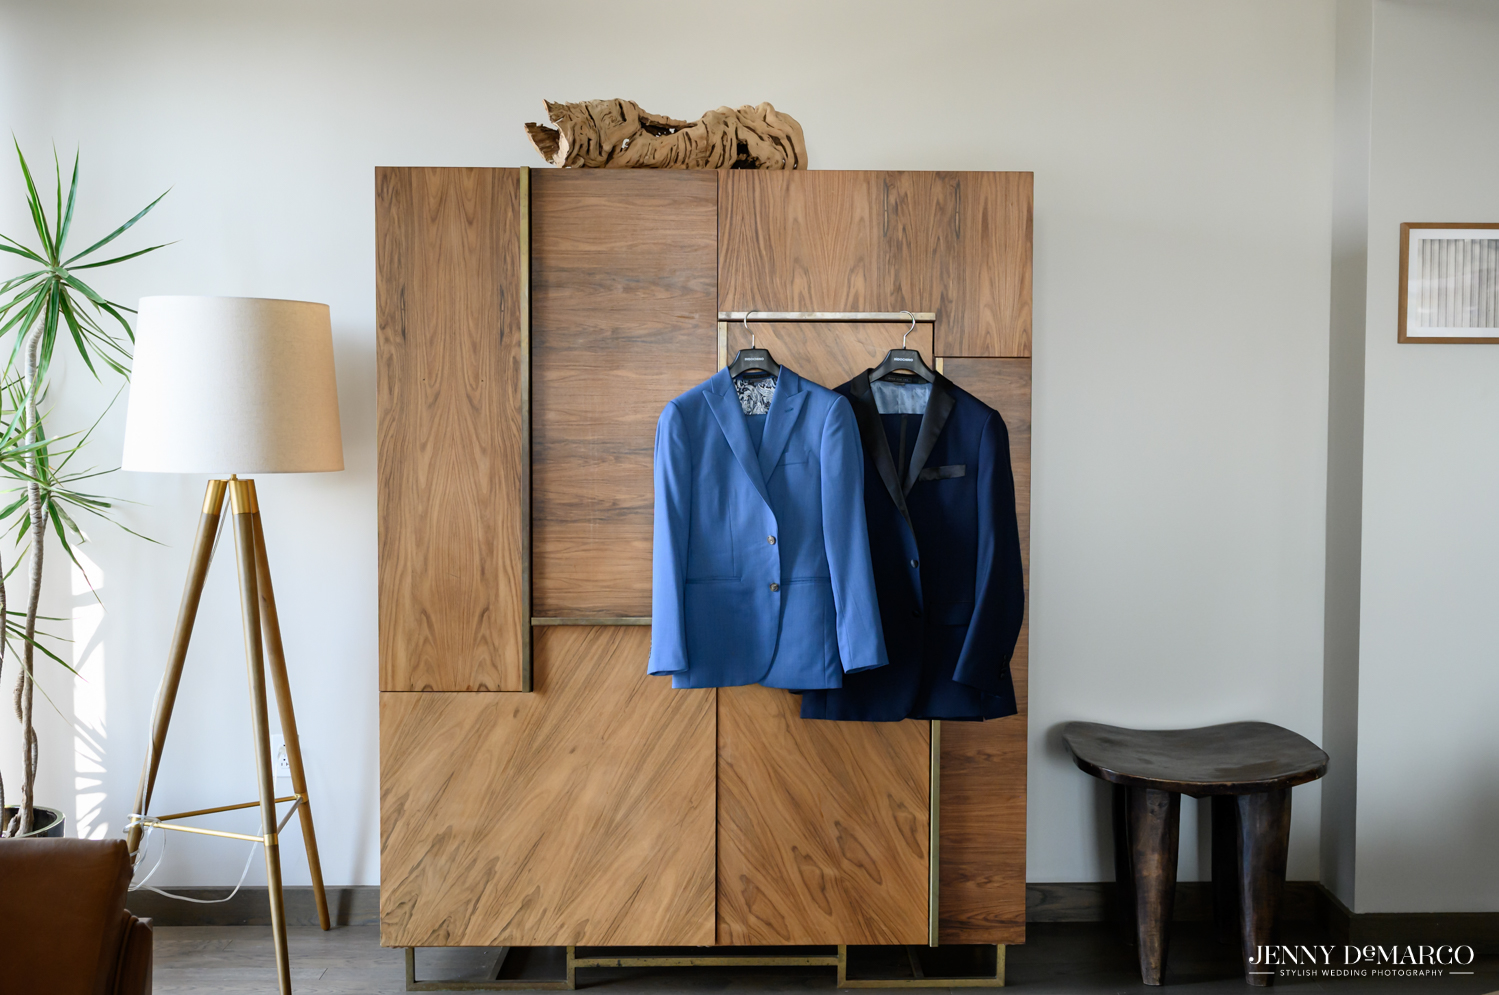 Grooms' suit jackets hanging on wooden armoire